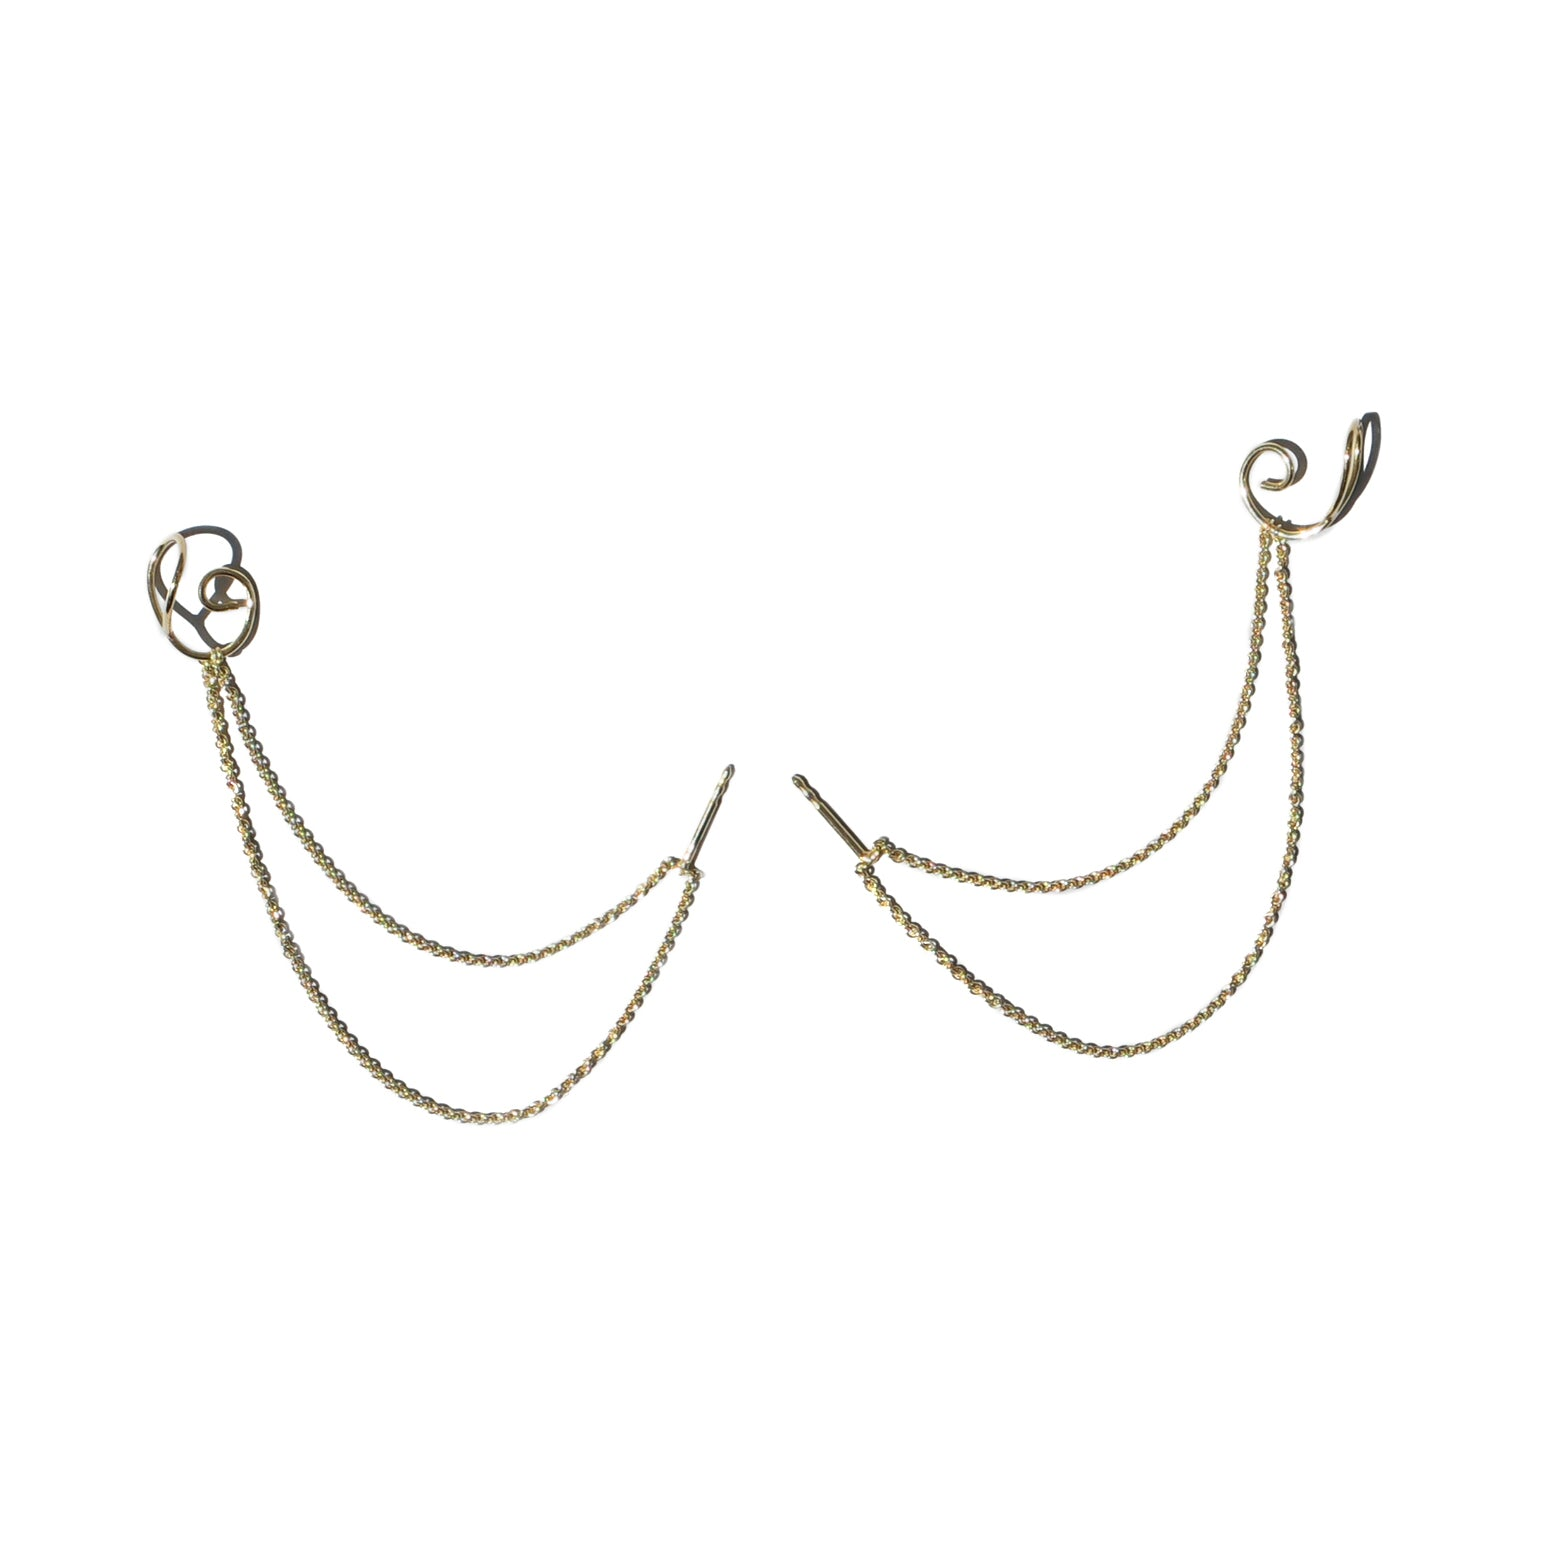 Saskia Diez - Chained Earrings